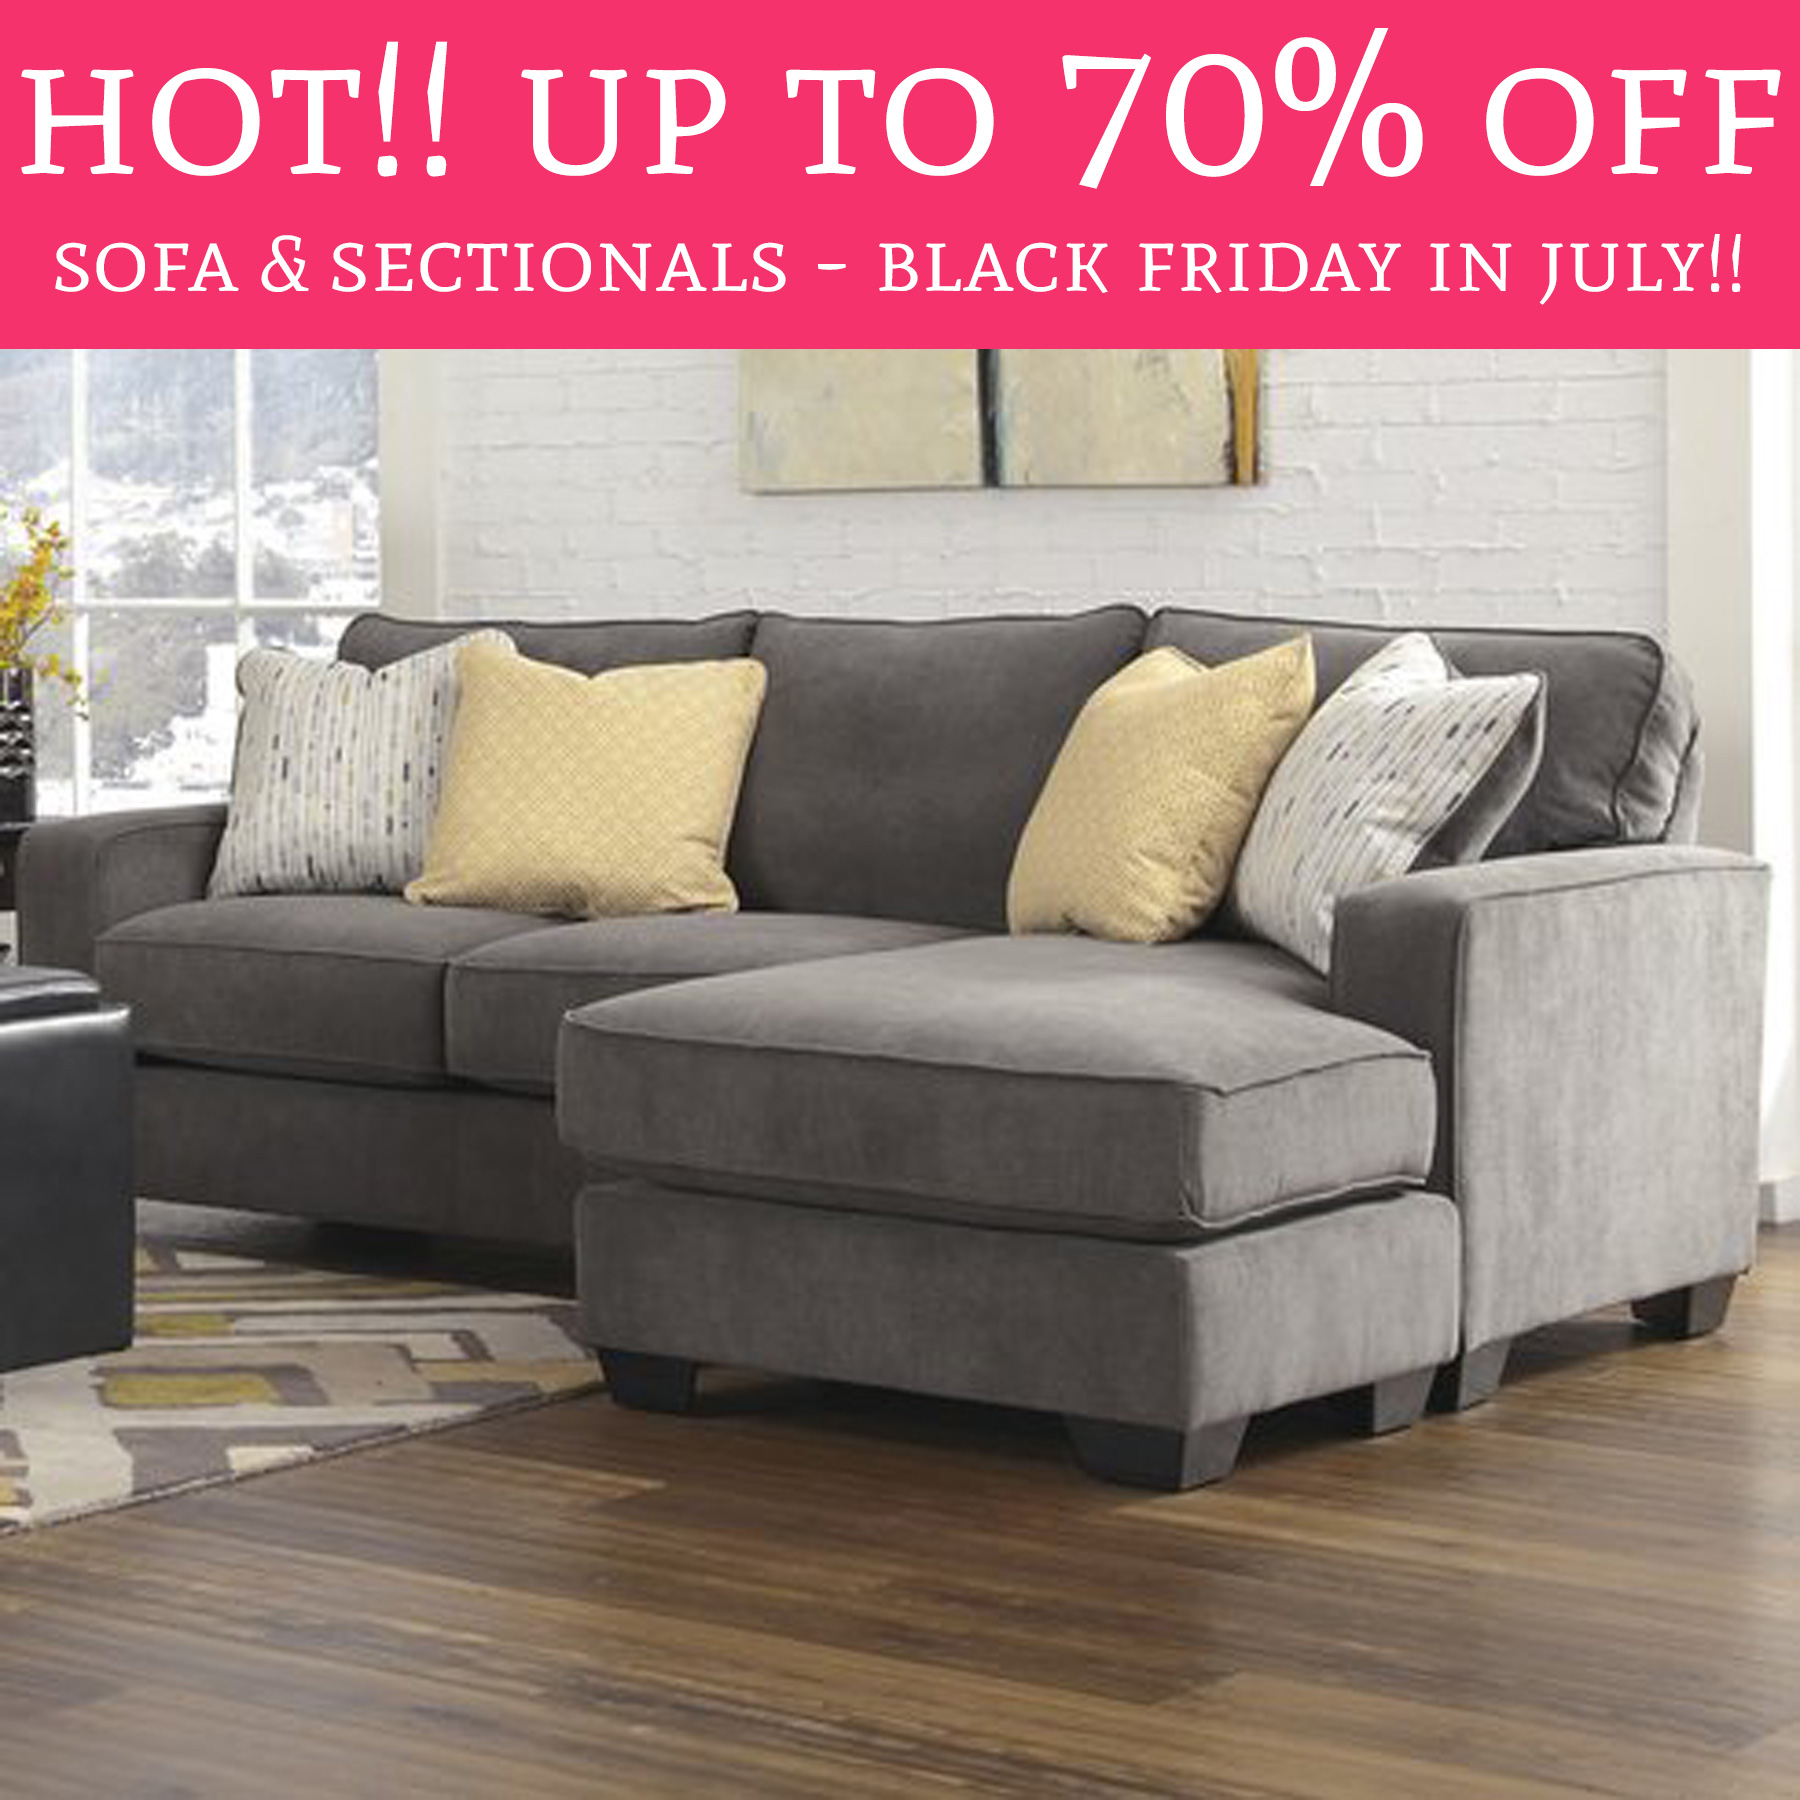 sofa black friday deals black friday deals sofas uk freecharge coupons 2018 december thesofa. Black Bedroom Furniture Sets. Home Design Ideas